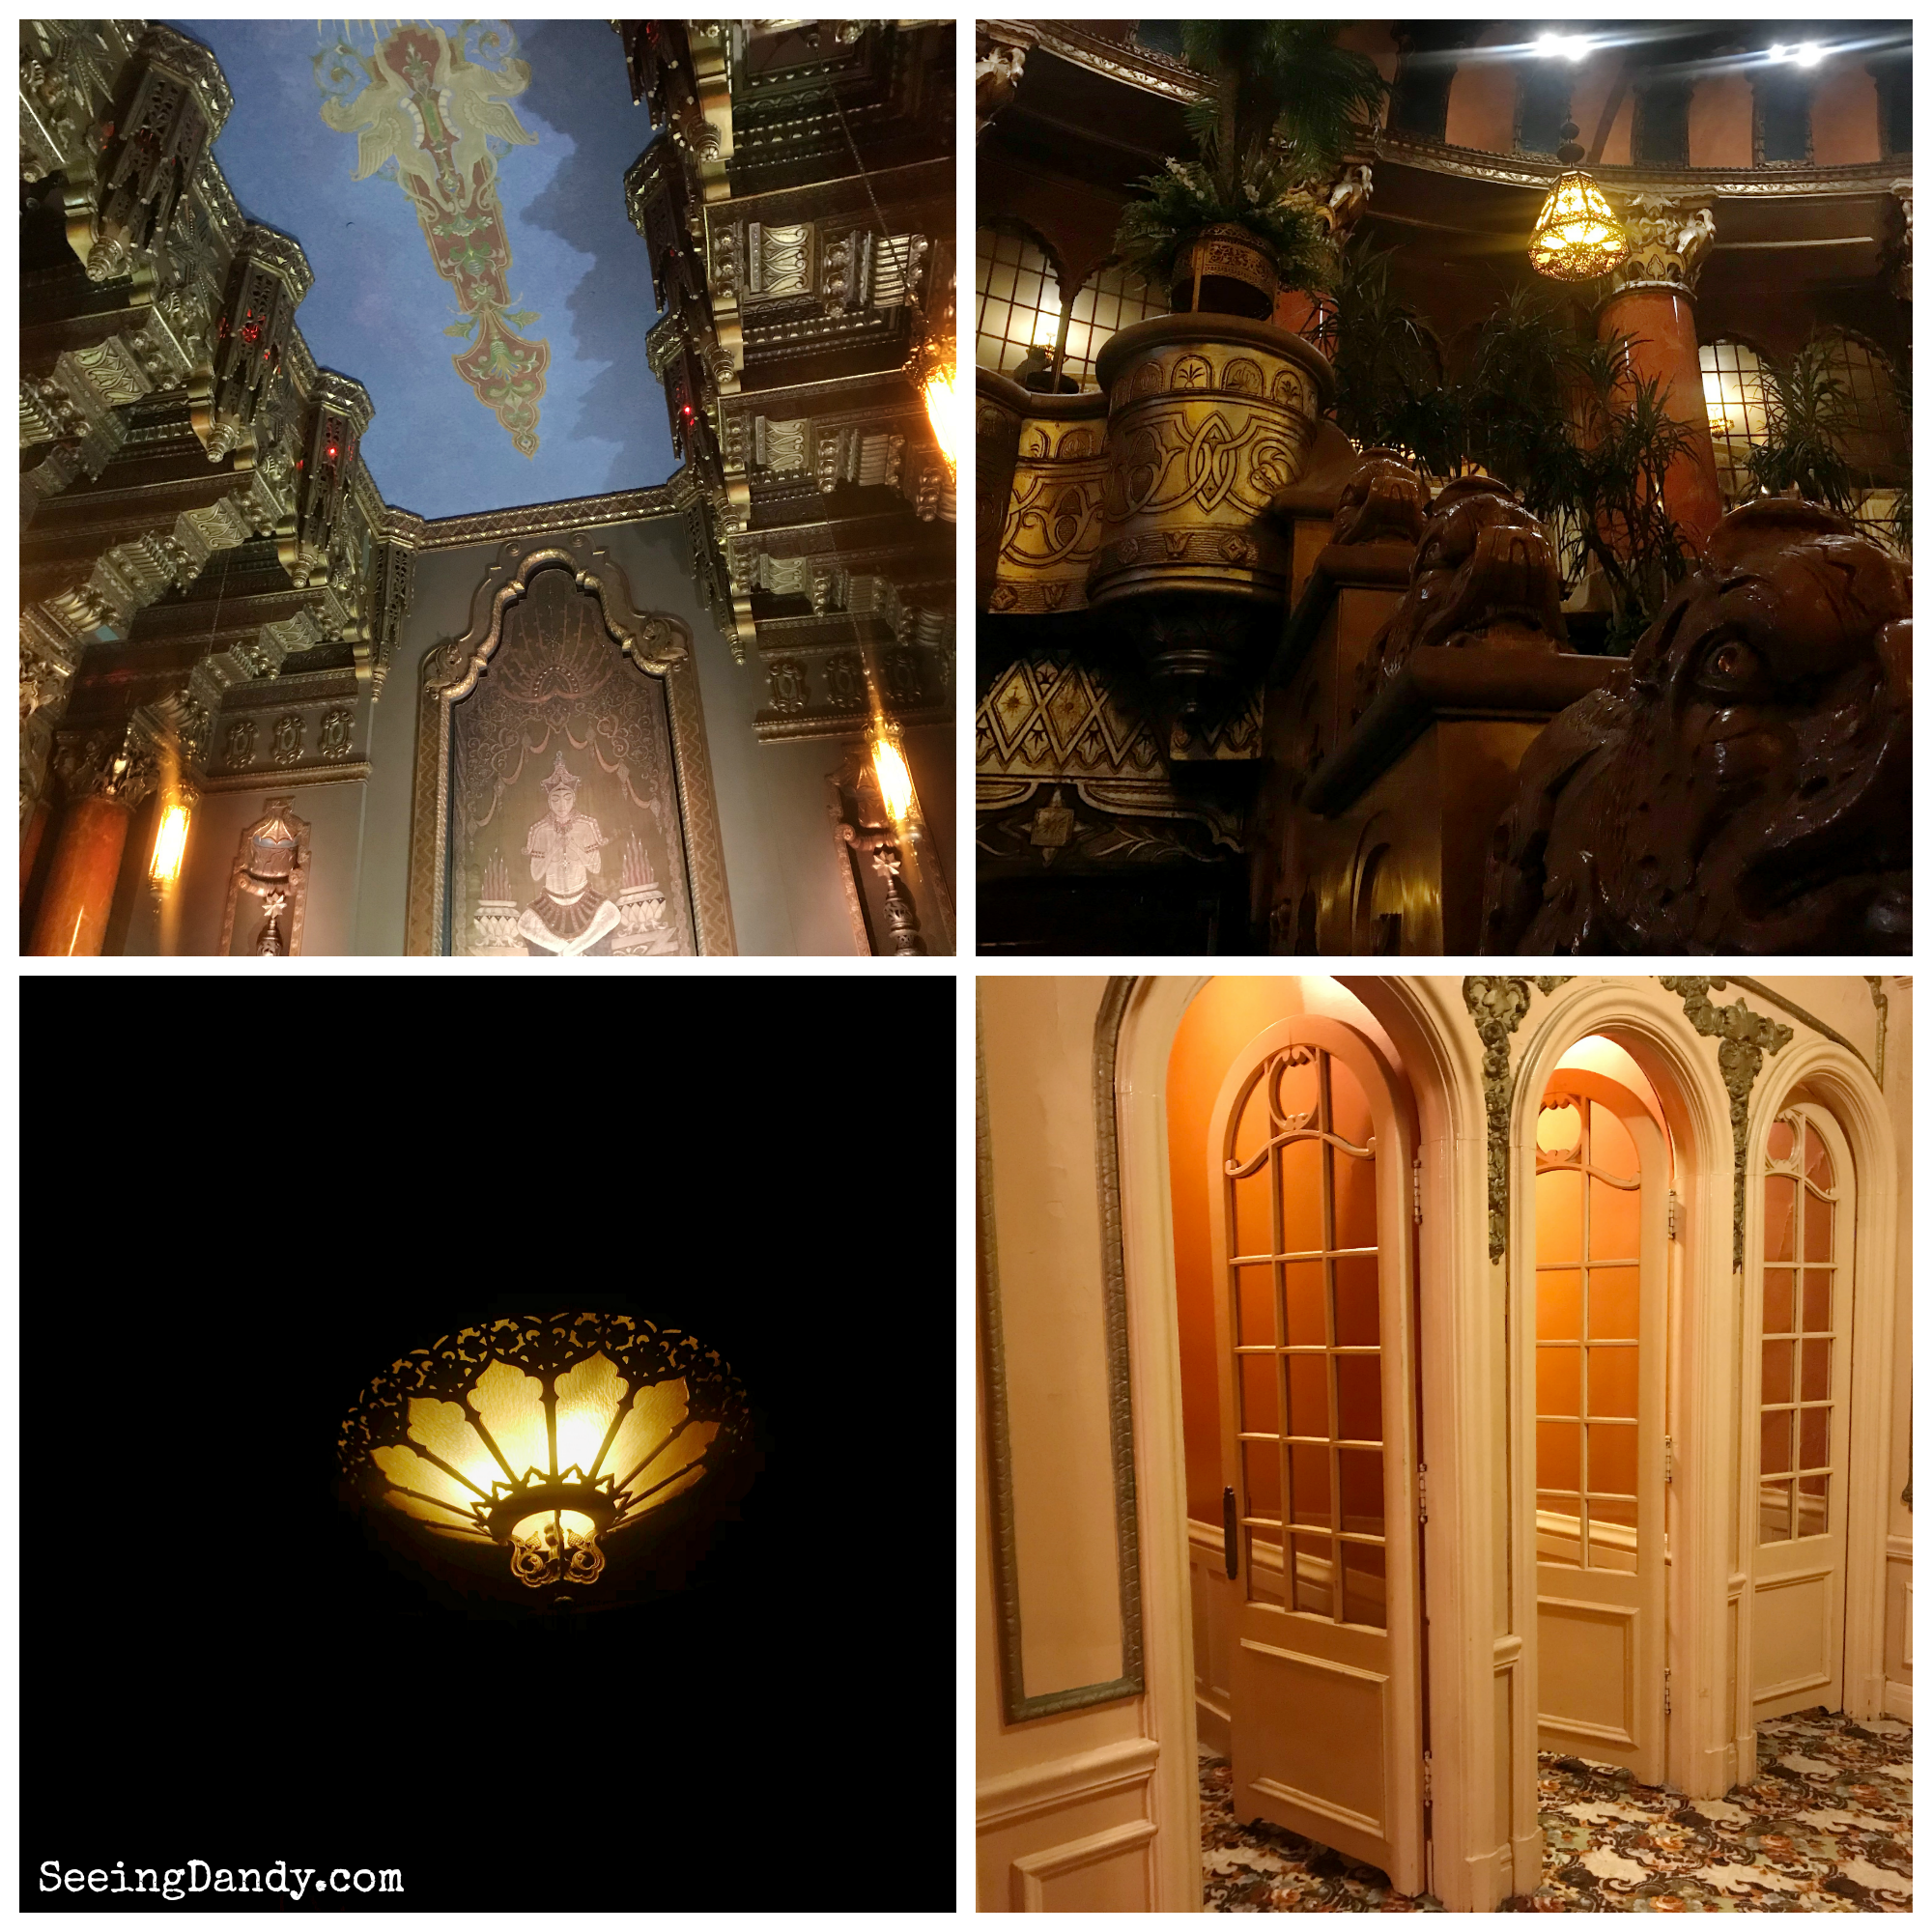 Vintage architecture and furnishings at the St. Louis Fox Theatre.